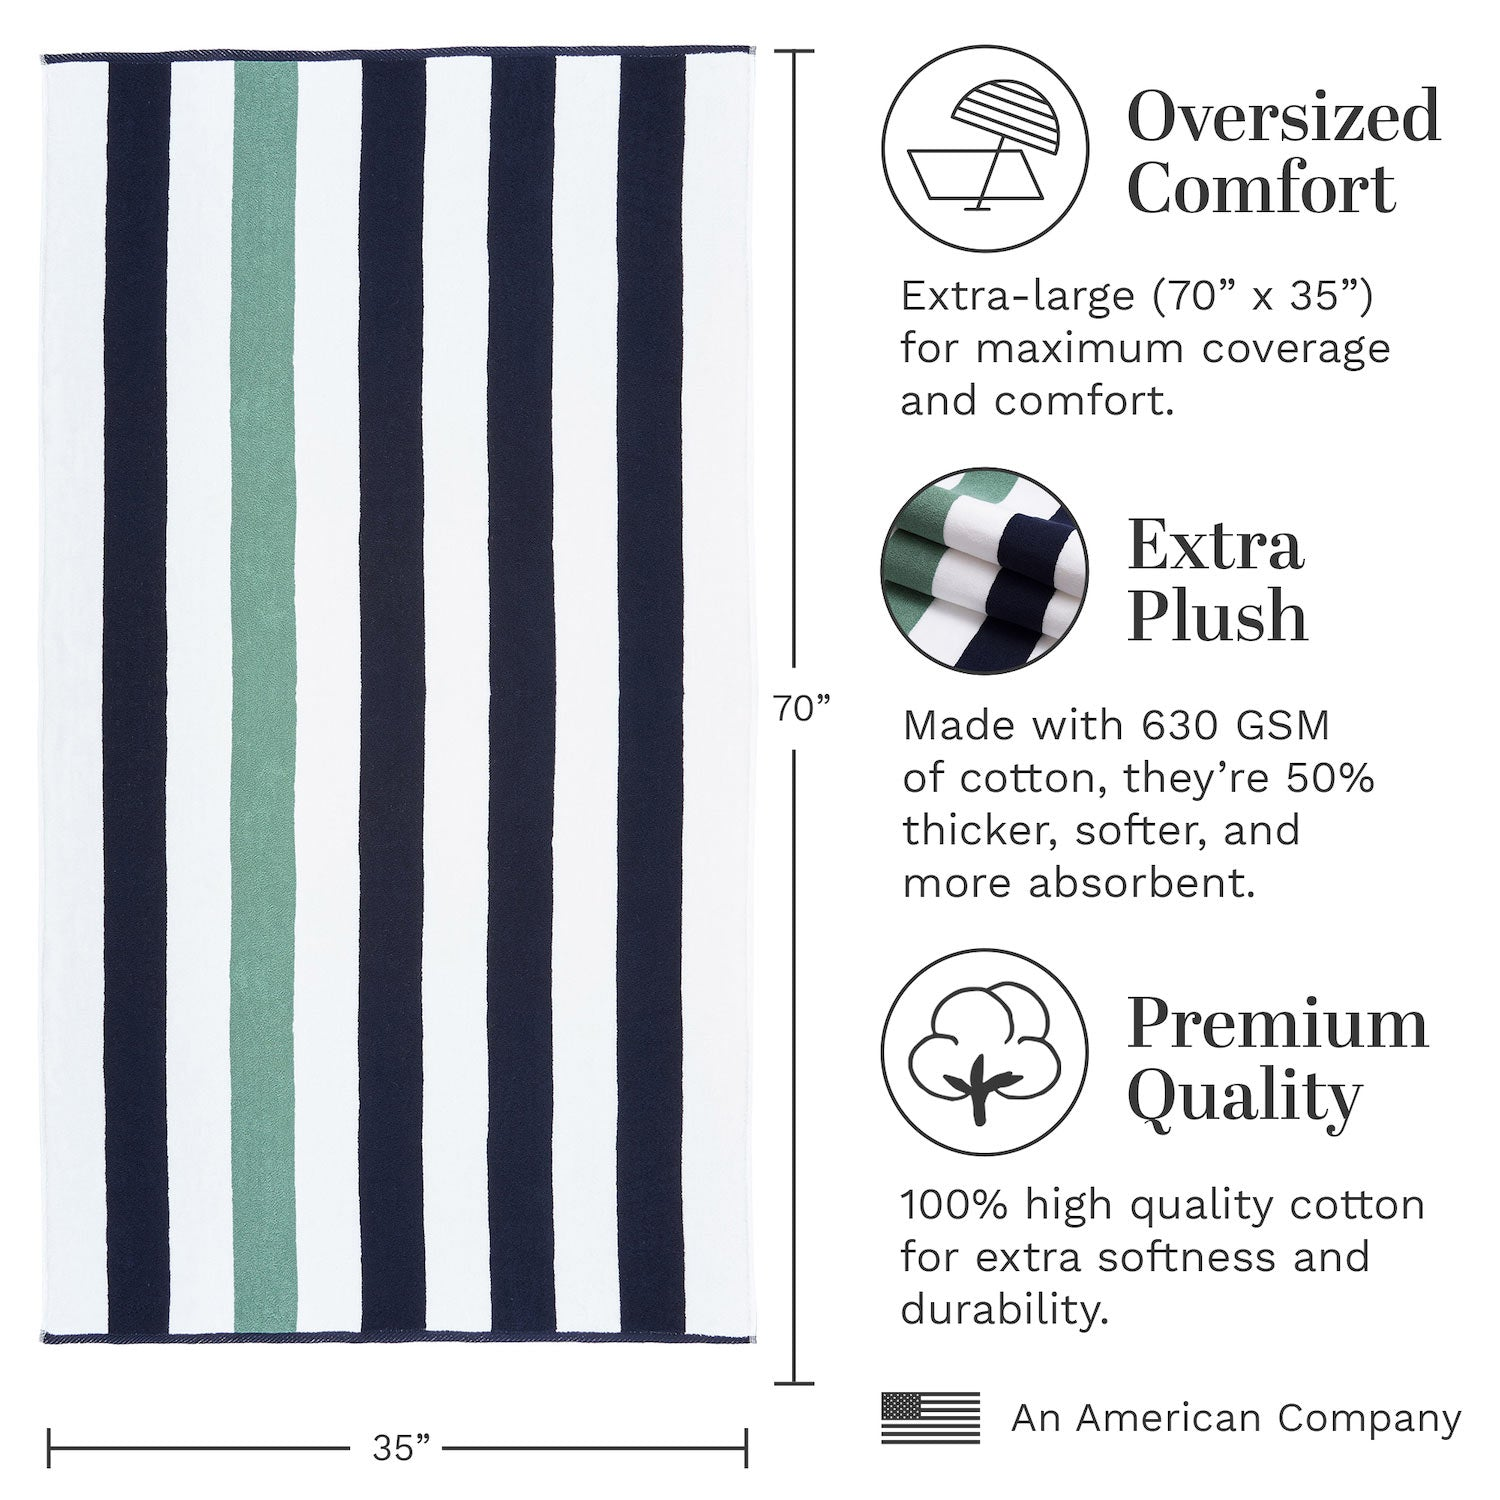 Infographic of our cabana beach towel highlighting that it's extra plush, premium quality, and oversized.